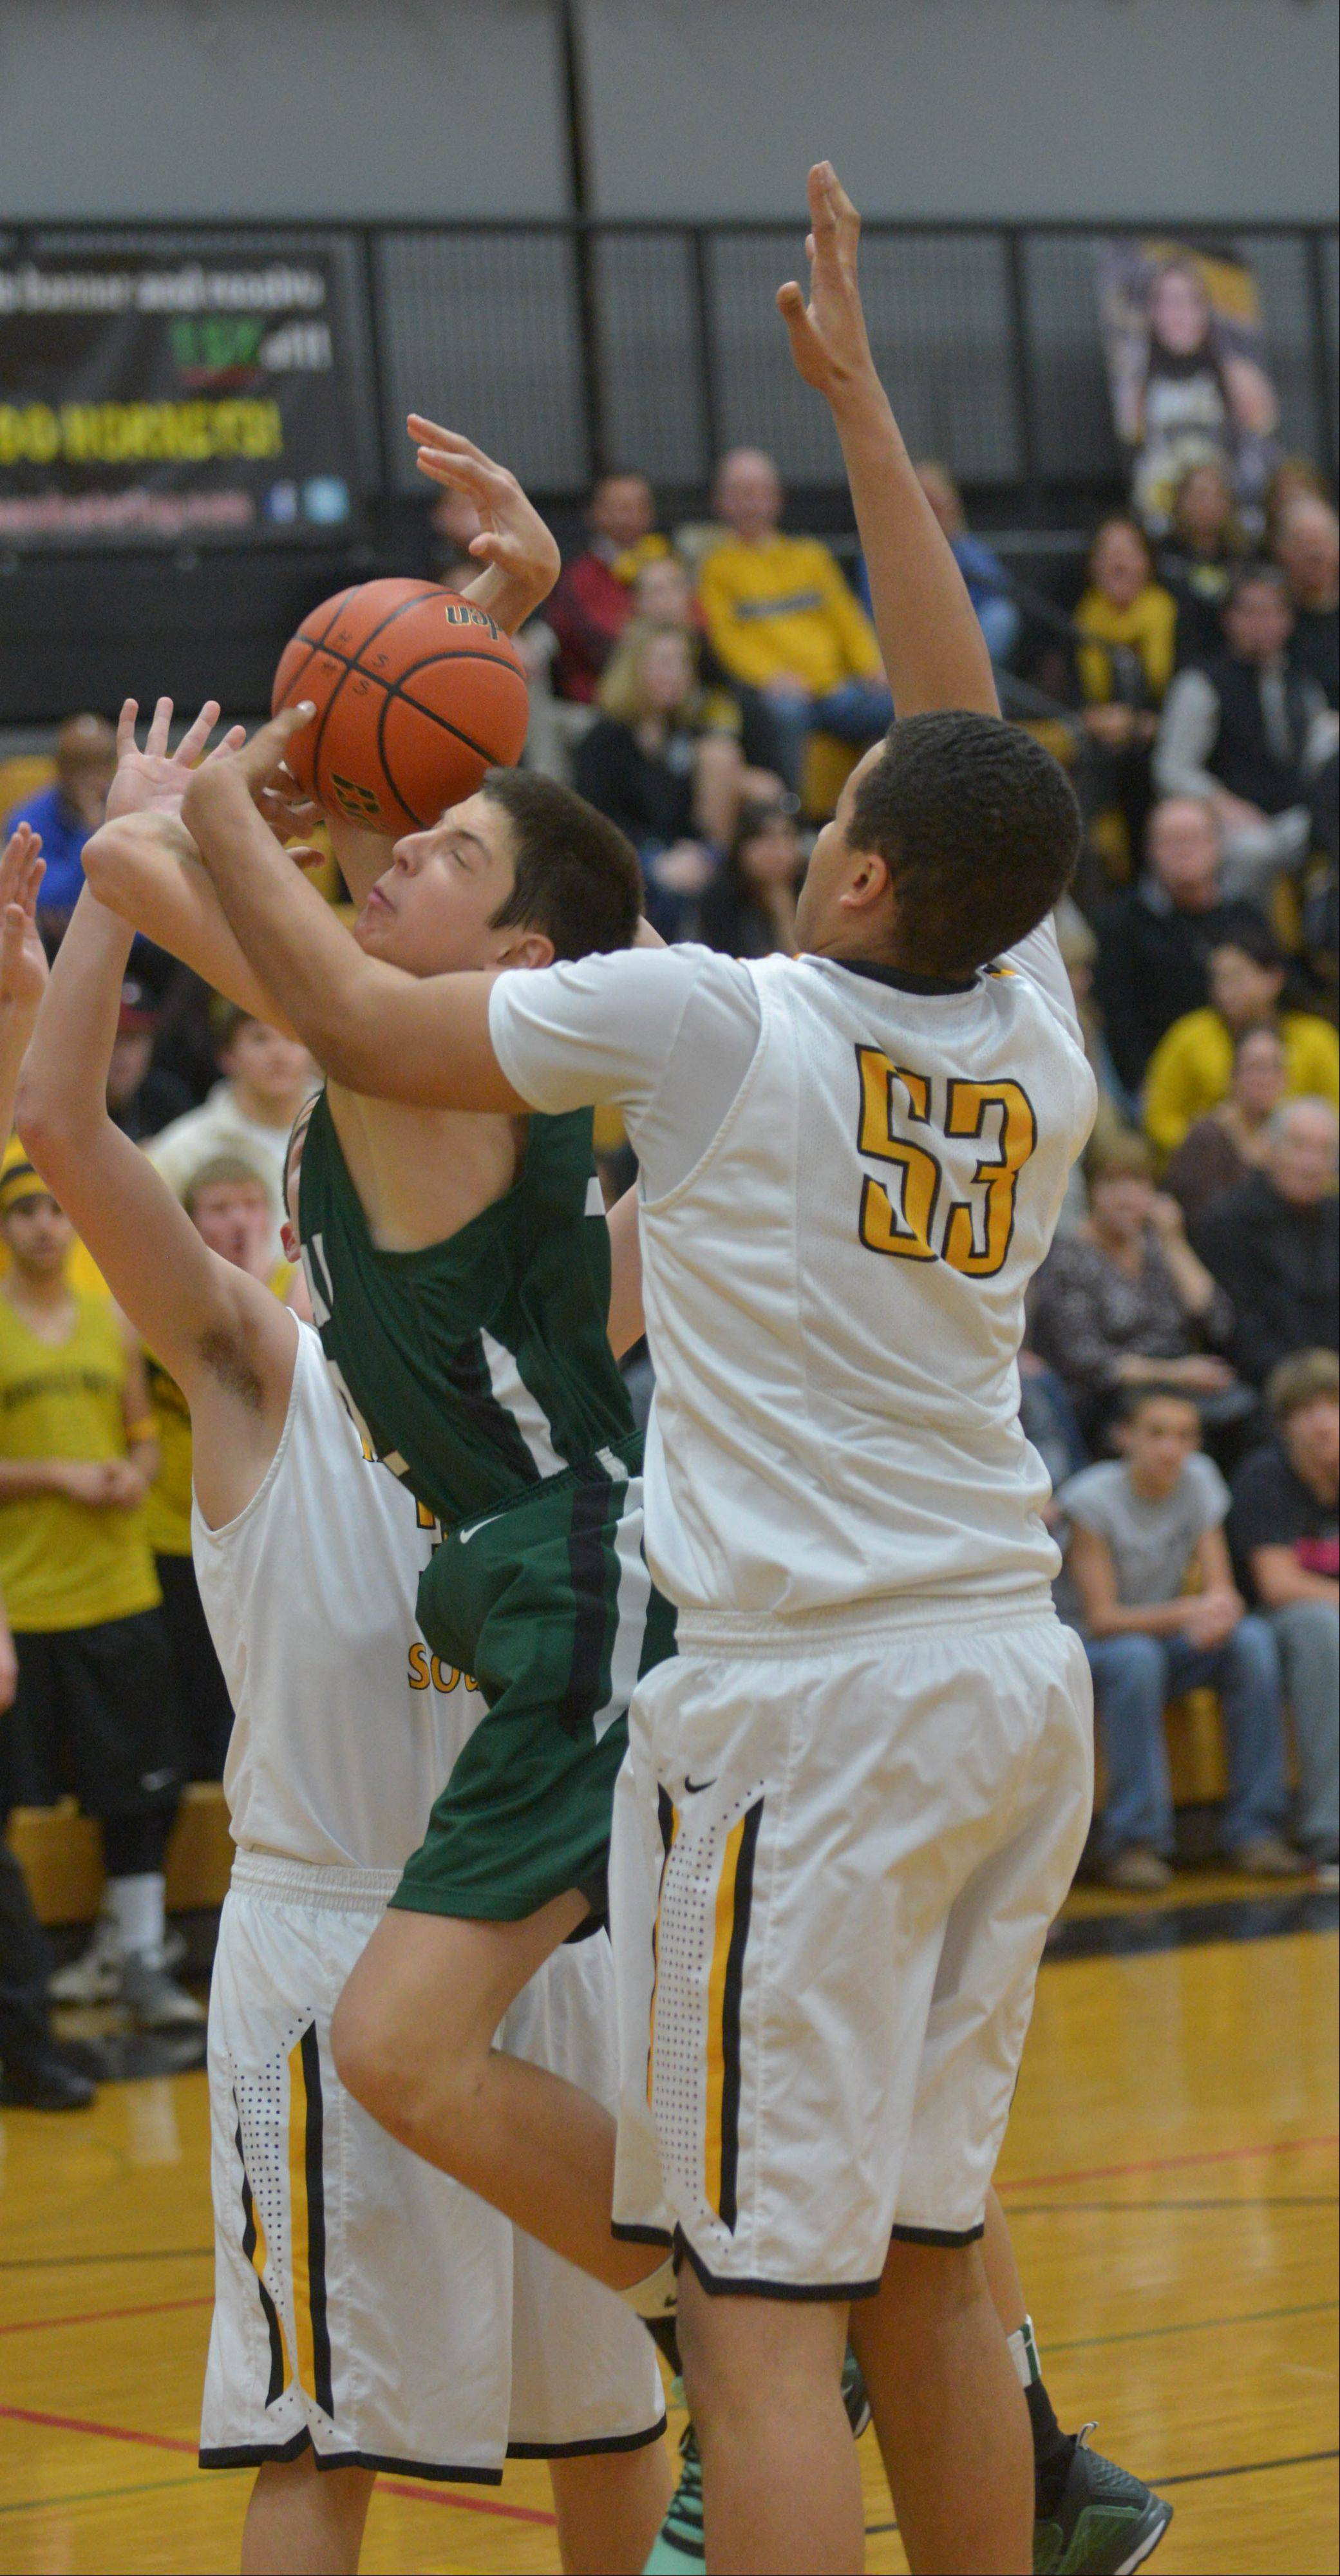 Glenbard West measures up against Hinsdale South